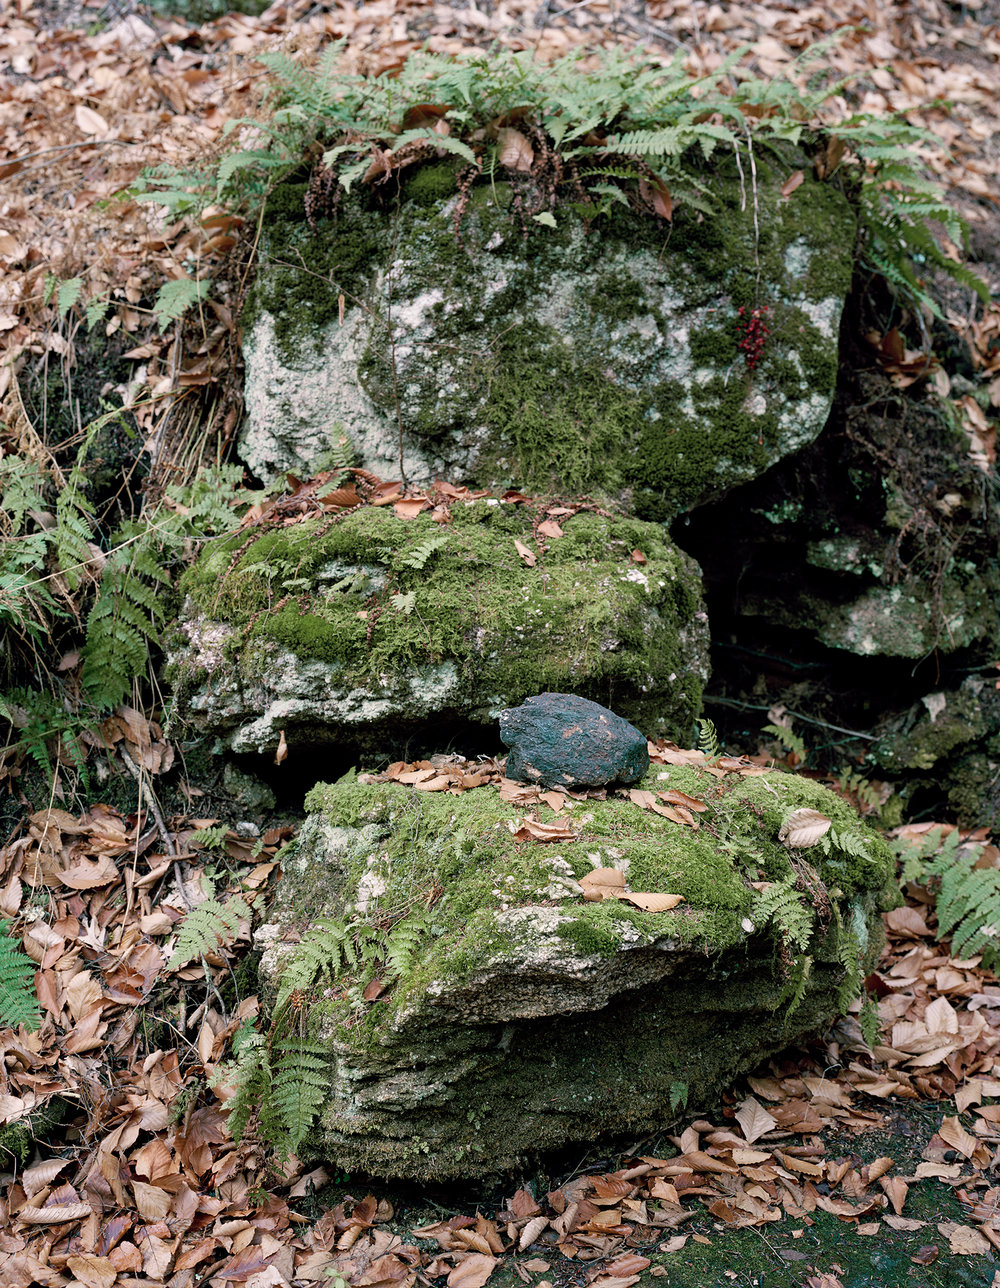 Moss Covered Stones, 2015